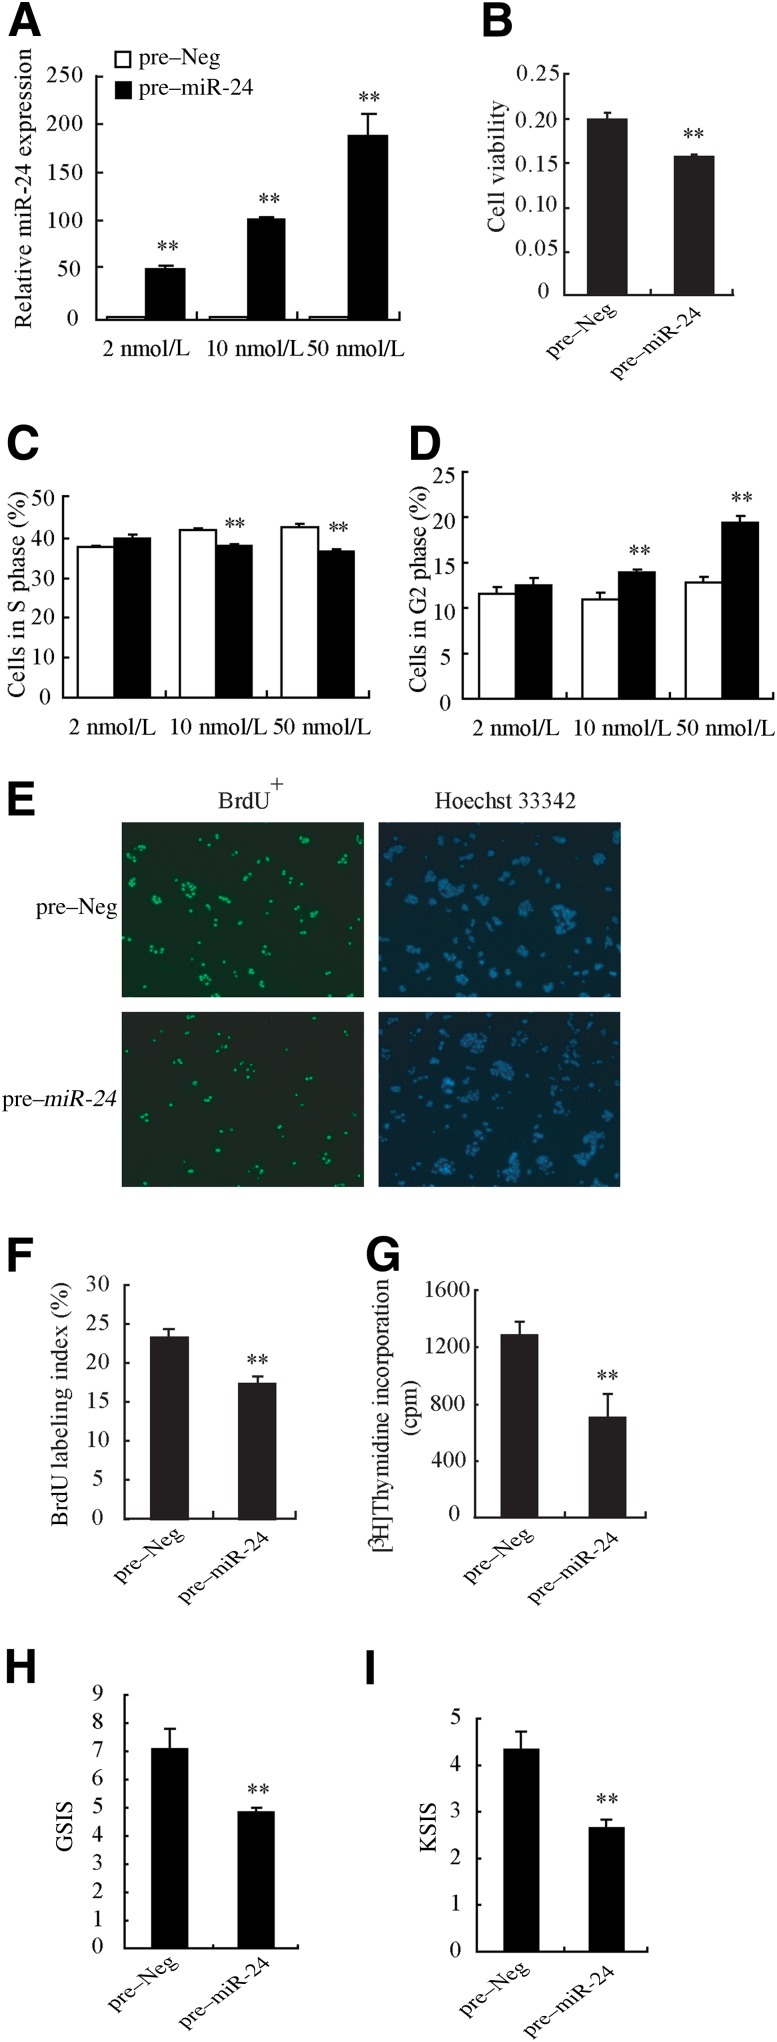 Elevated miR-24 reduces cell viability and impairs β-cell function. A : Pre–miR-24 mimetics or pre-Neg at different concentrations (2, 10, or 50 nmol/L) were transfected into MIN6 cells for 48 h, when TaqMan qRT-PCR was carried out. Transfection caused an effective increase in miR-24 abundance in MIN6 cells. B : Overexpression of miR-24 for 48 h caused a decrease of cell viability in MIN6 cells, measured by the WST-1 assay. Transfection of 10 nmol/L miR-24 led to a decrease of cell number in the S phase ( C ) and to an increase in the G2 phase ( D ). The same results were detected with transfection of miR-24 at 50 nmol/L but not at 2 nmol/L, which was insufficient to induce cell cycle arrest. E and F : BrdU labeling was used to confirm the reduced DNA synthesis accompanying the elevation of miR-24 . E : Representative images show BrdU and Hoechst stained cells, and at least 800 cells were counted. F : The BrdU labeling index is defined as the ratio of the number of BrdU + nuclei to the total number of nuclei within the fields. G : Decreased cell proliferation was also detected in primary islets isolated from ICR mice. GSIS and KSIS assays were performed on MIN6 cells overexpressing miR-24 for 48 h, and the GSIS index ( H ) and KSIS index ( I ) were calculated. The results were similar to those in palmitate-treated cells. ** P